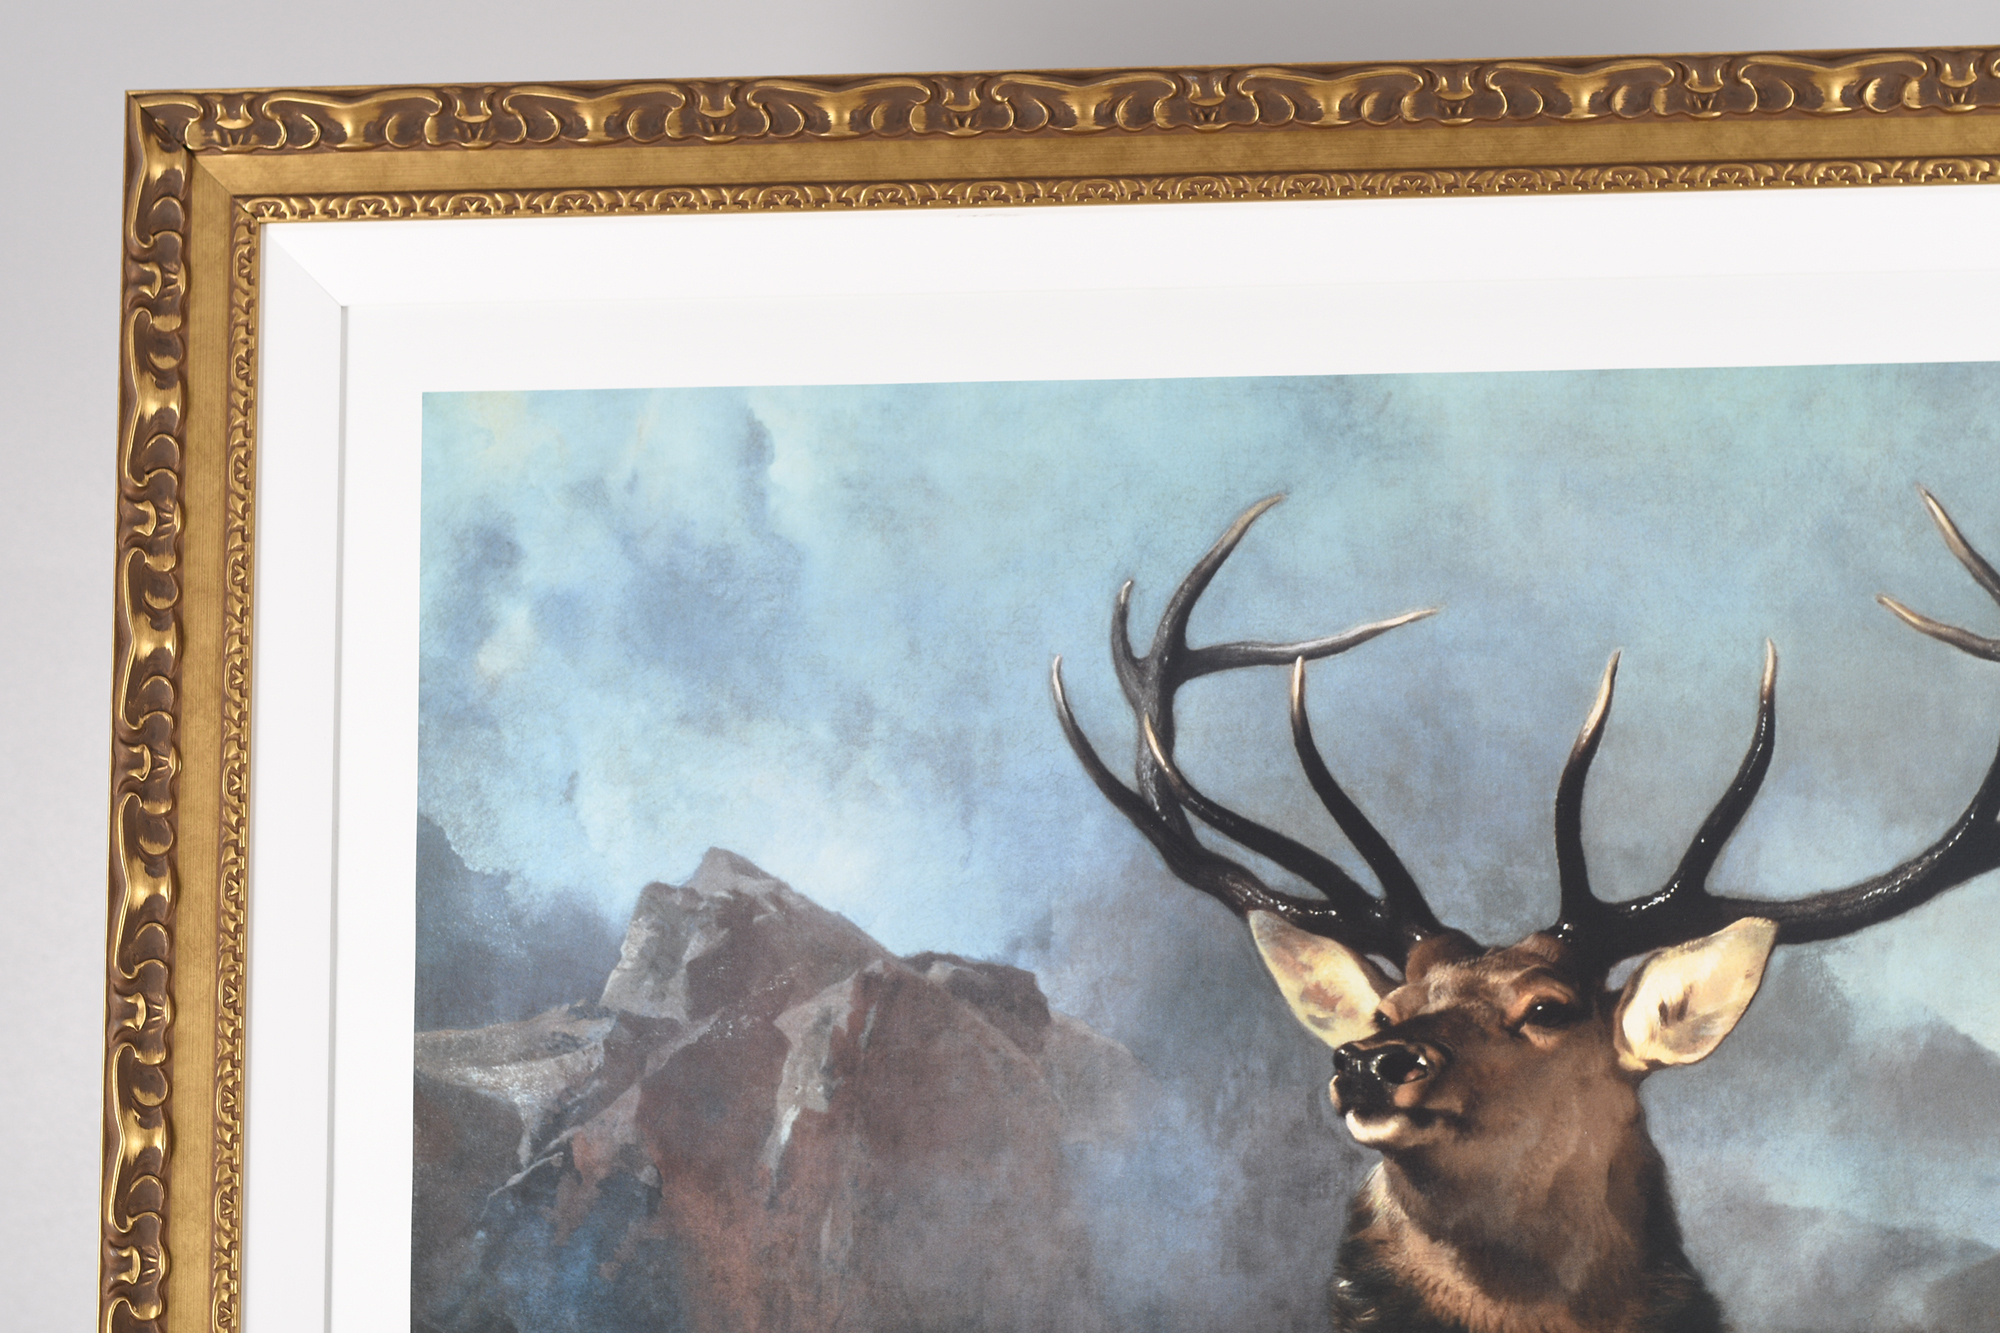 """Edwin Landseer Limited Edition """"Monarch of the Glen"""" 1 of only 85 Worldwide. - Image 4 of 9"""